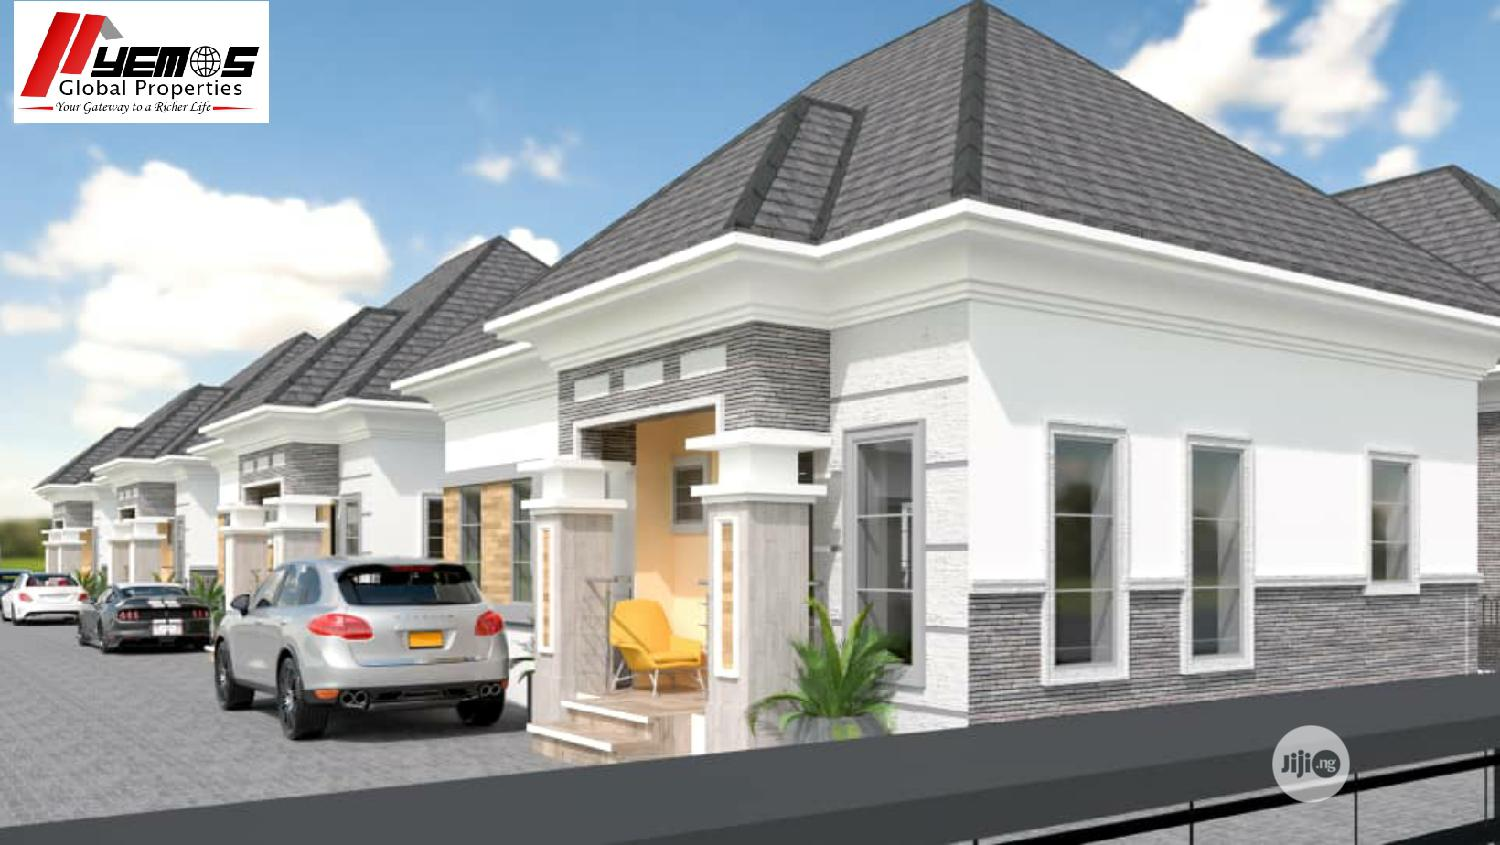 Newly Built Bungalow For Sale With Registered Deed